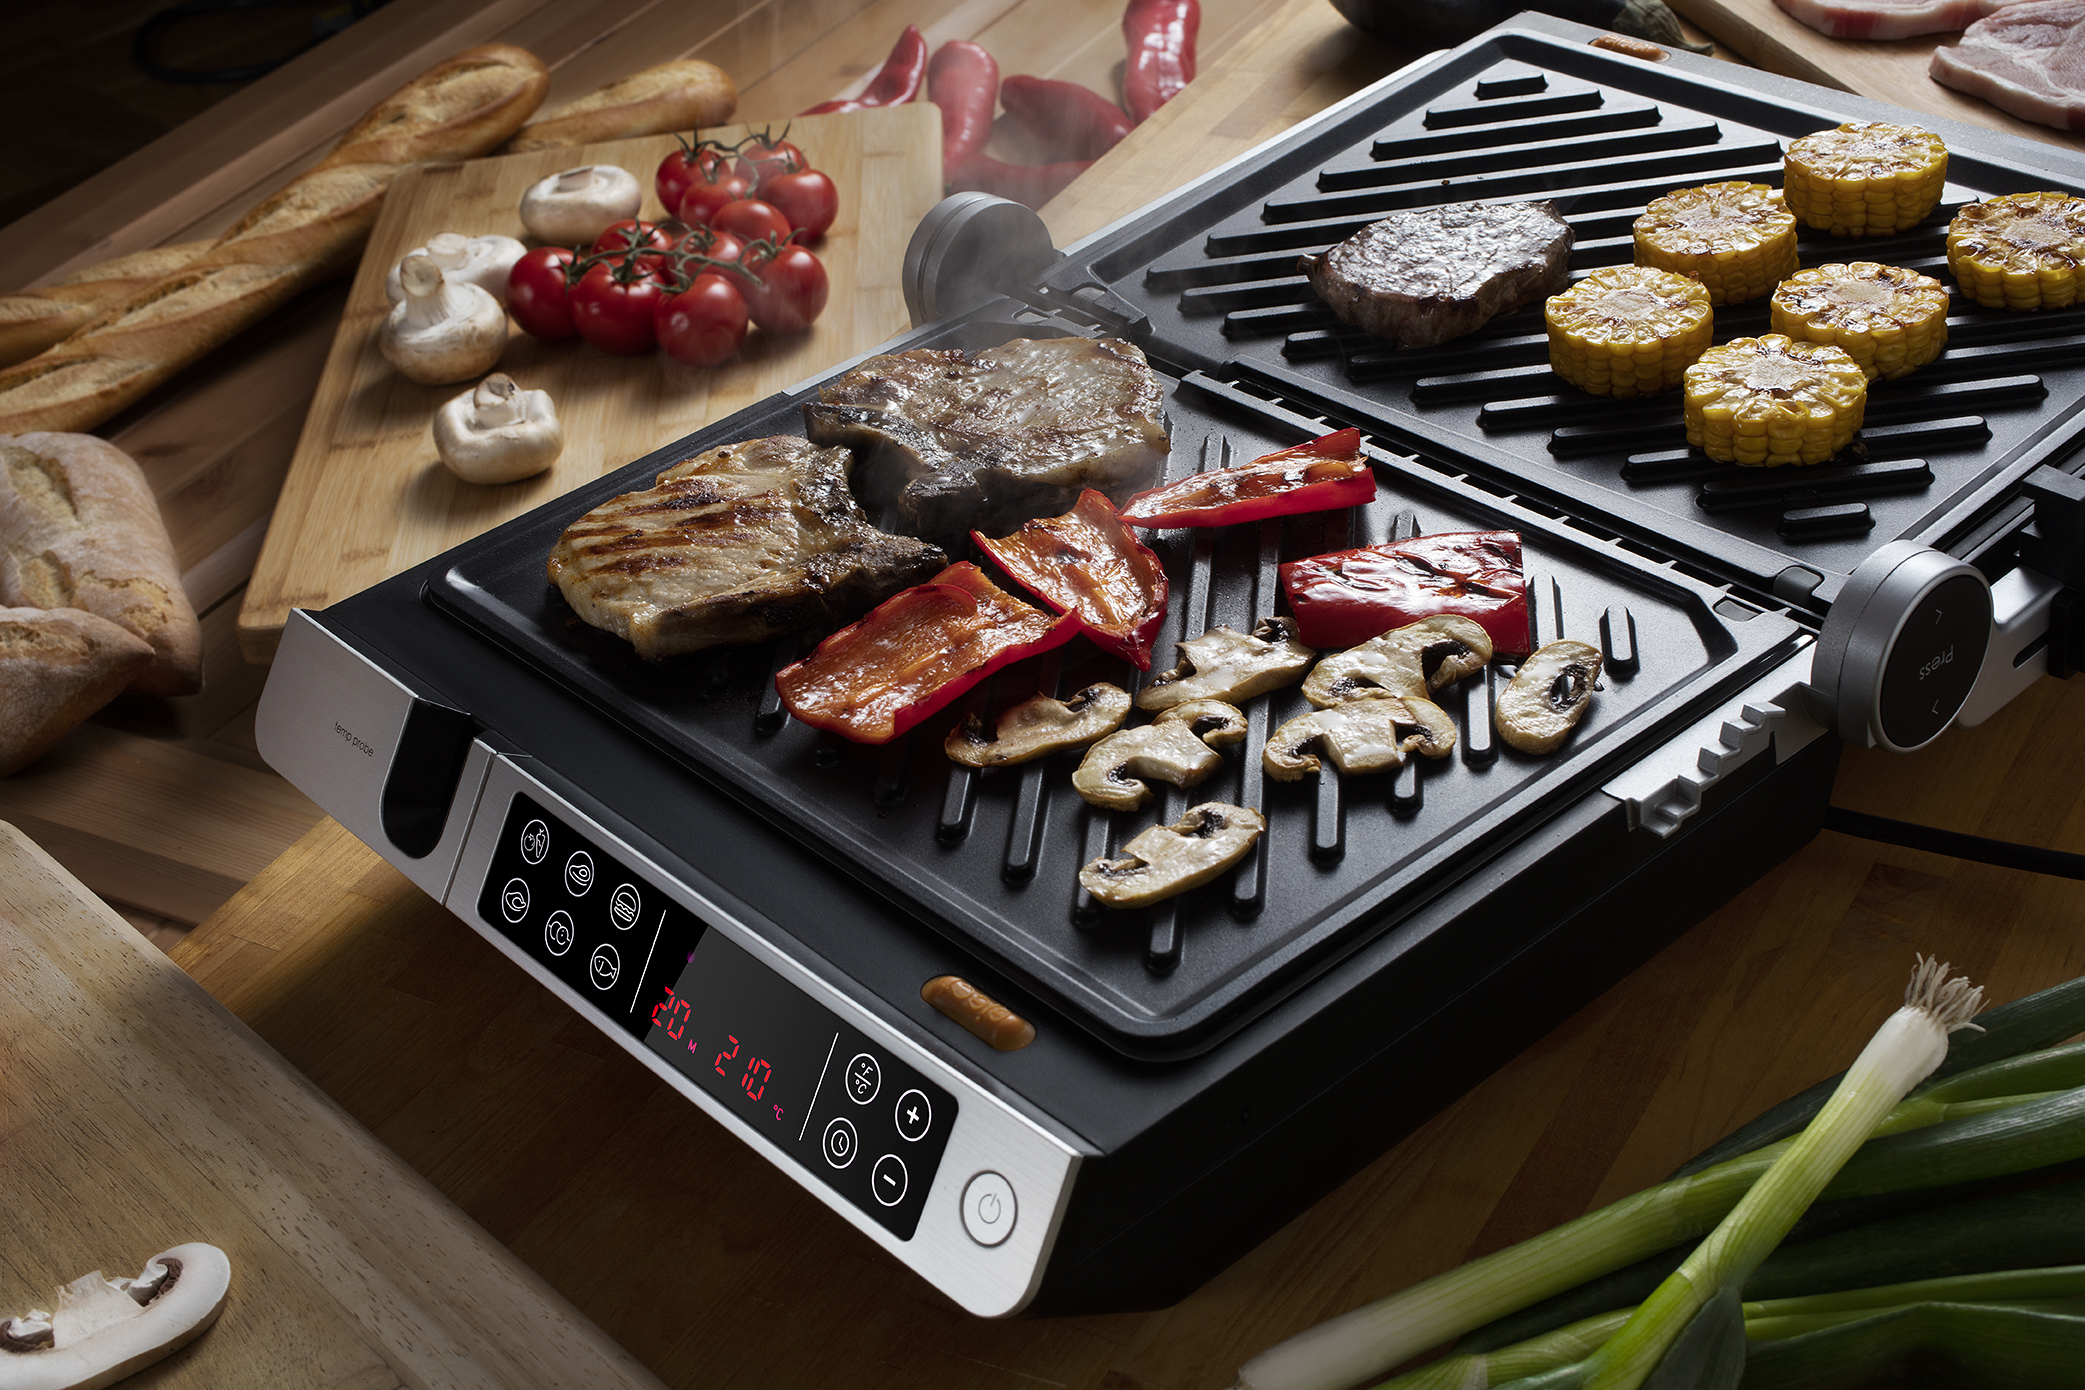 2-in-1 contact and BBQ grill